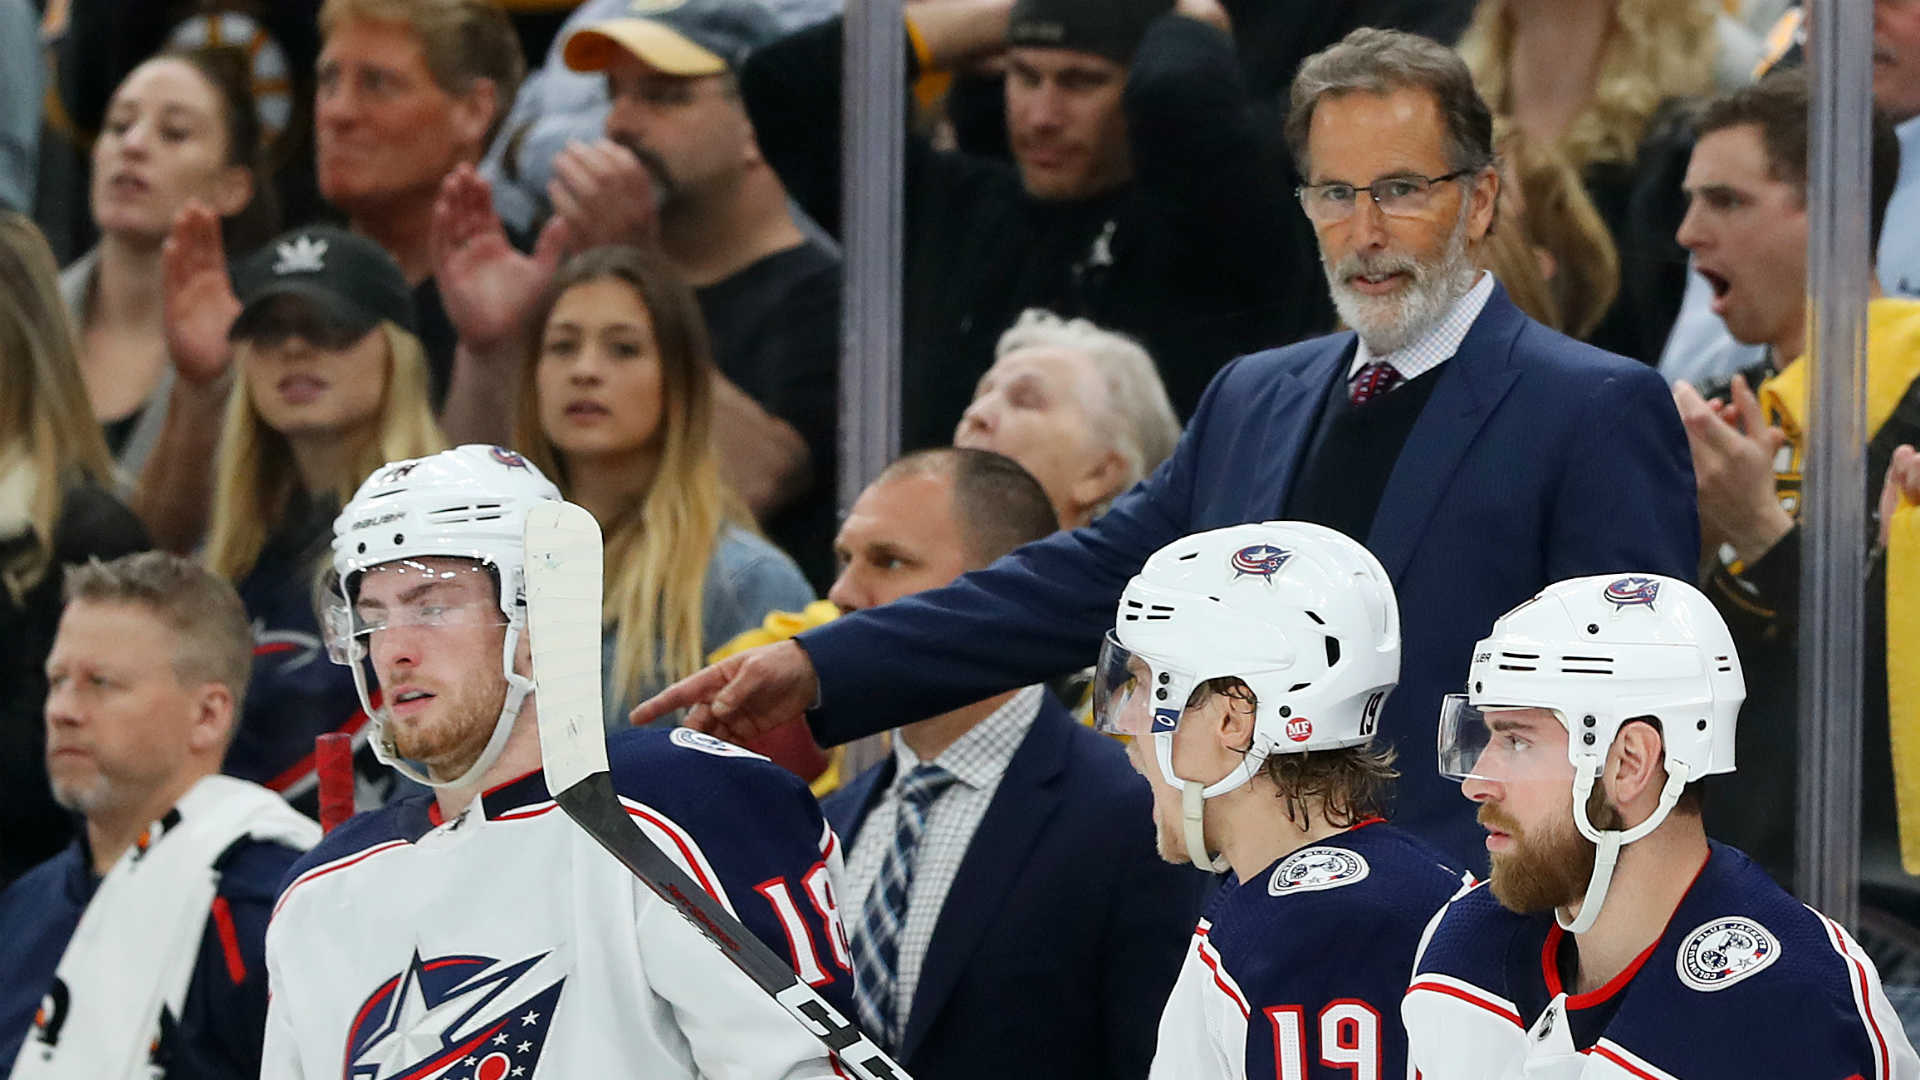 Blue Jackets coach John Tortorella has skin cancer removed from forehead